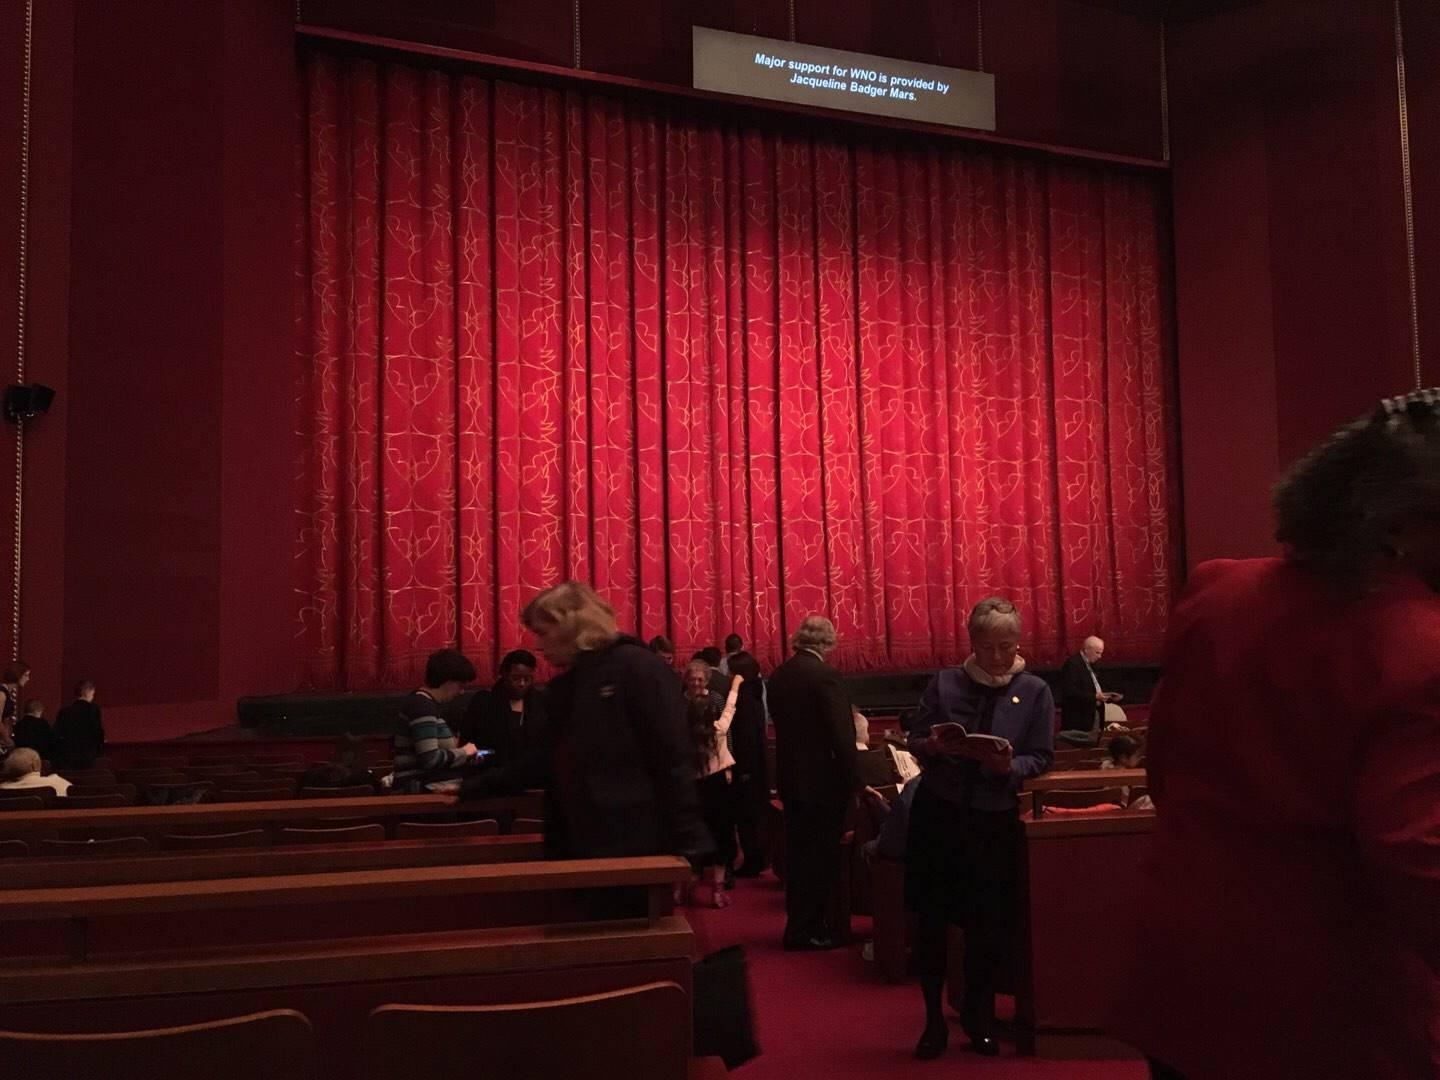 The Kennedy Center Opera House Section Orch Row U Seat 1